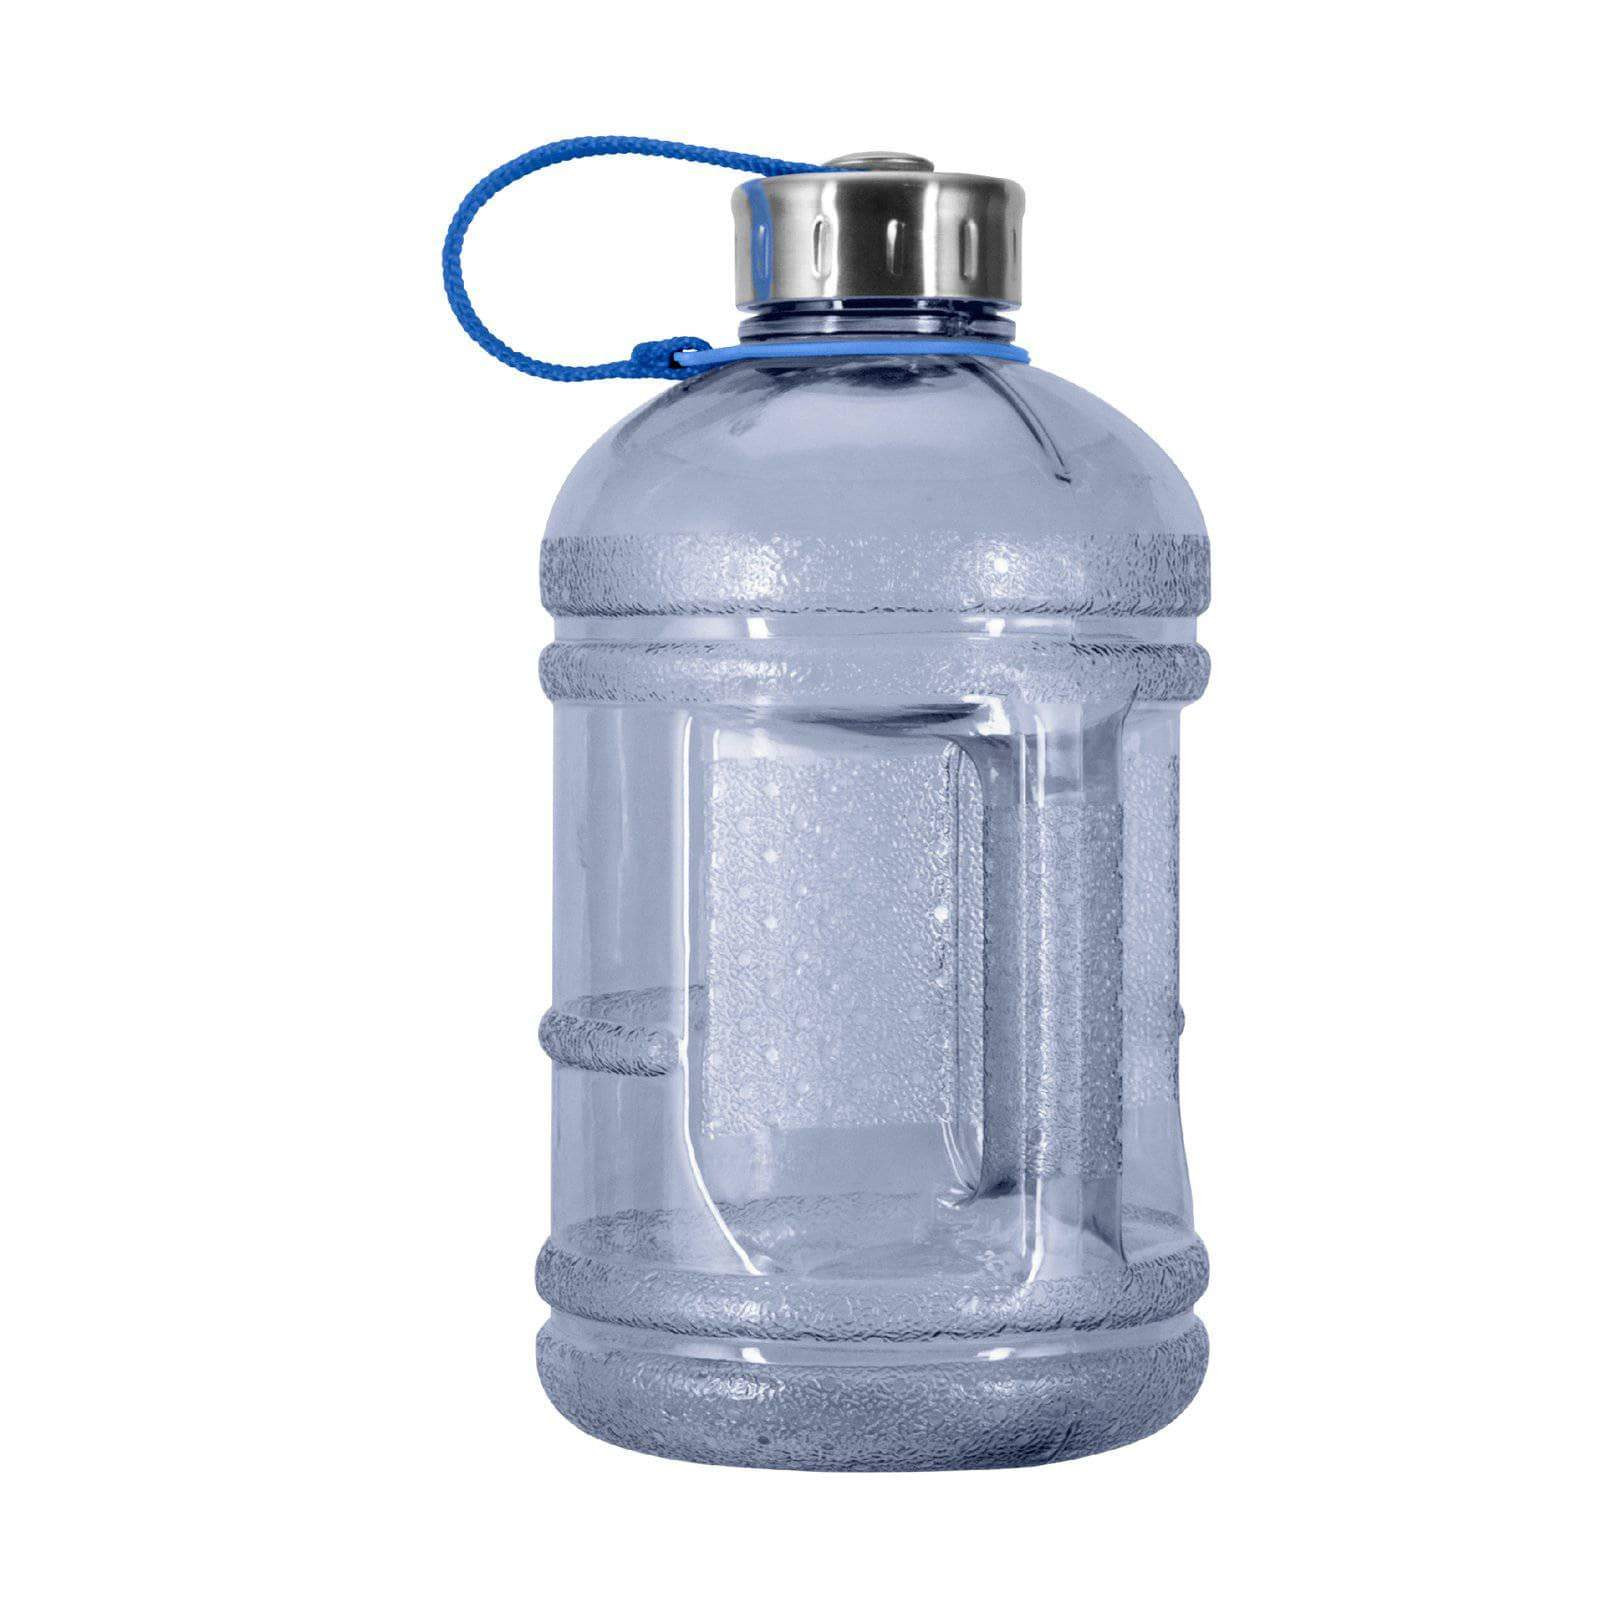 Geo Bottles Bottles Natural Blue 1/2 Gallon BPA FREE Plastic Water Bottle w/ 48mm Steel Cap